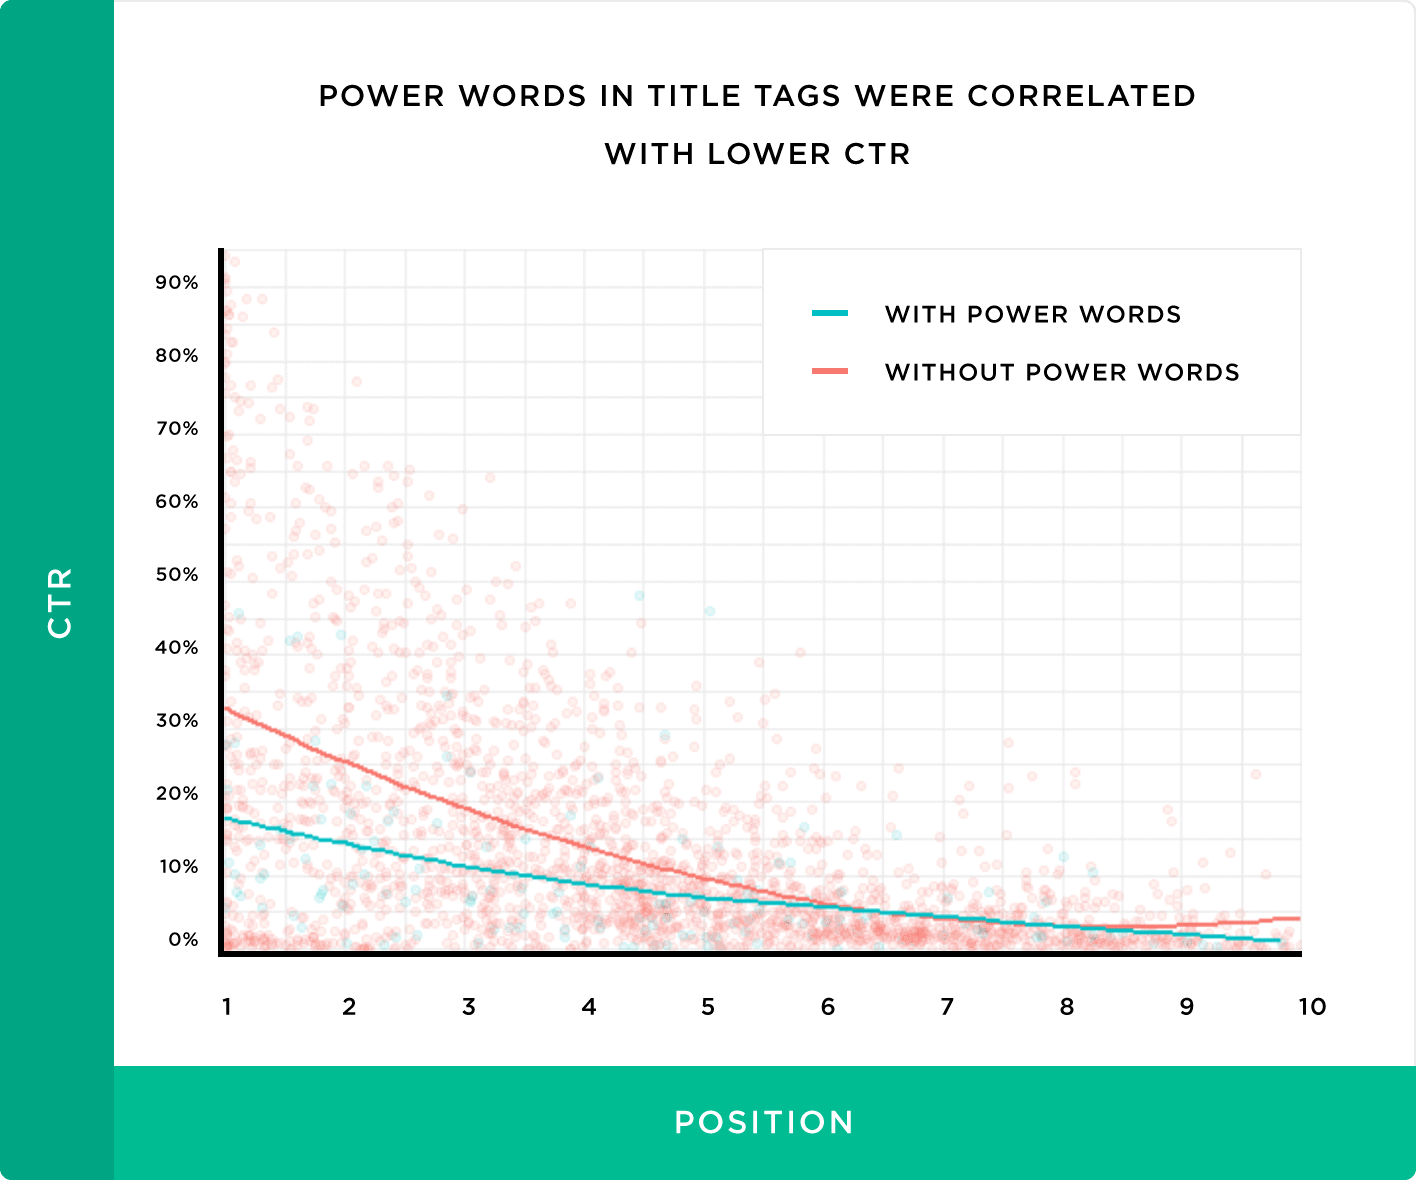 Power words in title tags were correlated with lower CTR